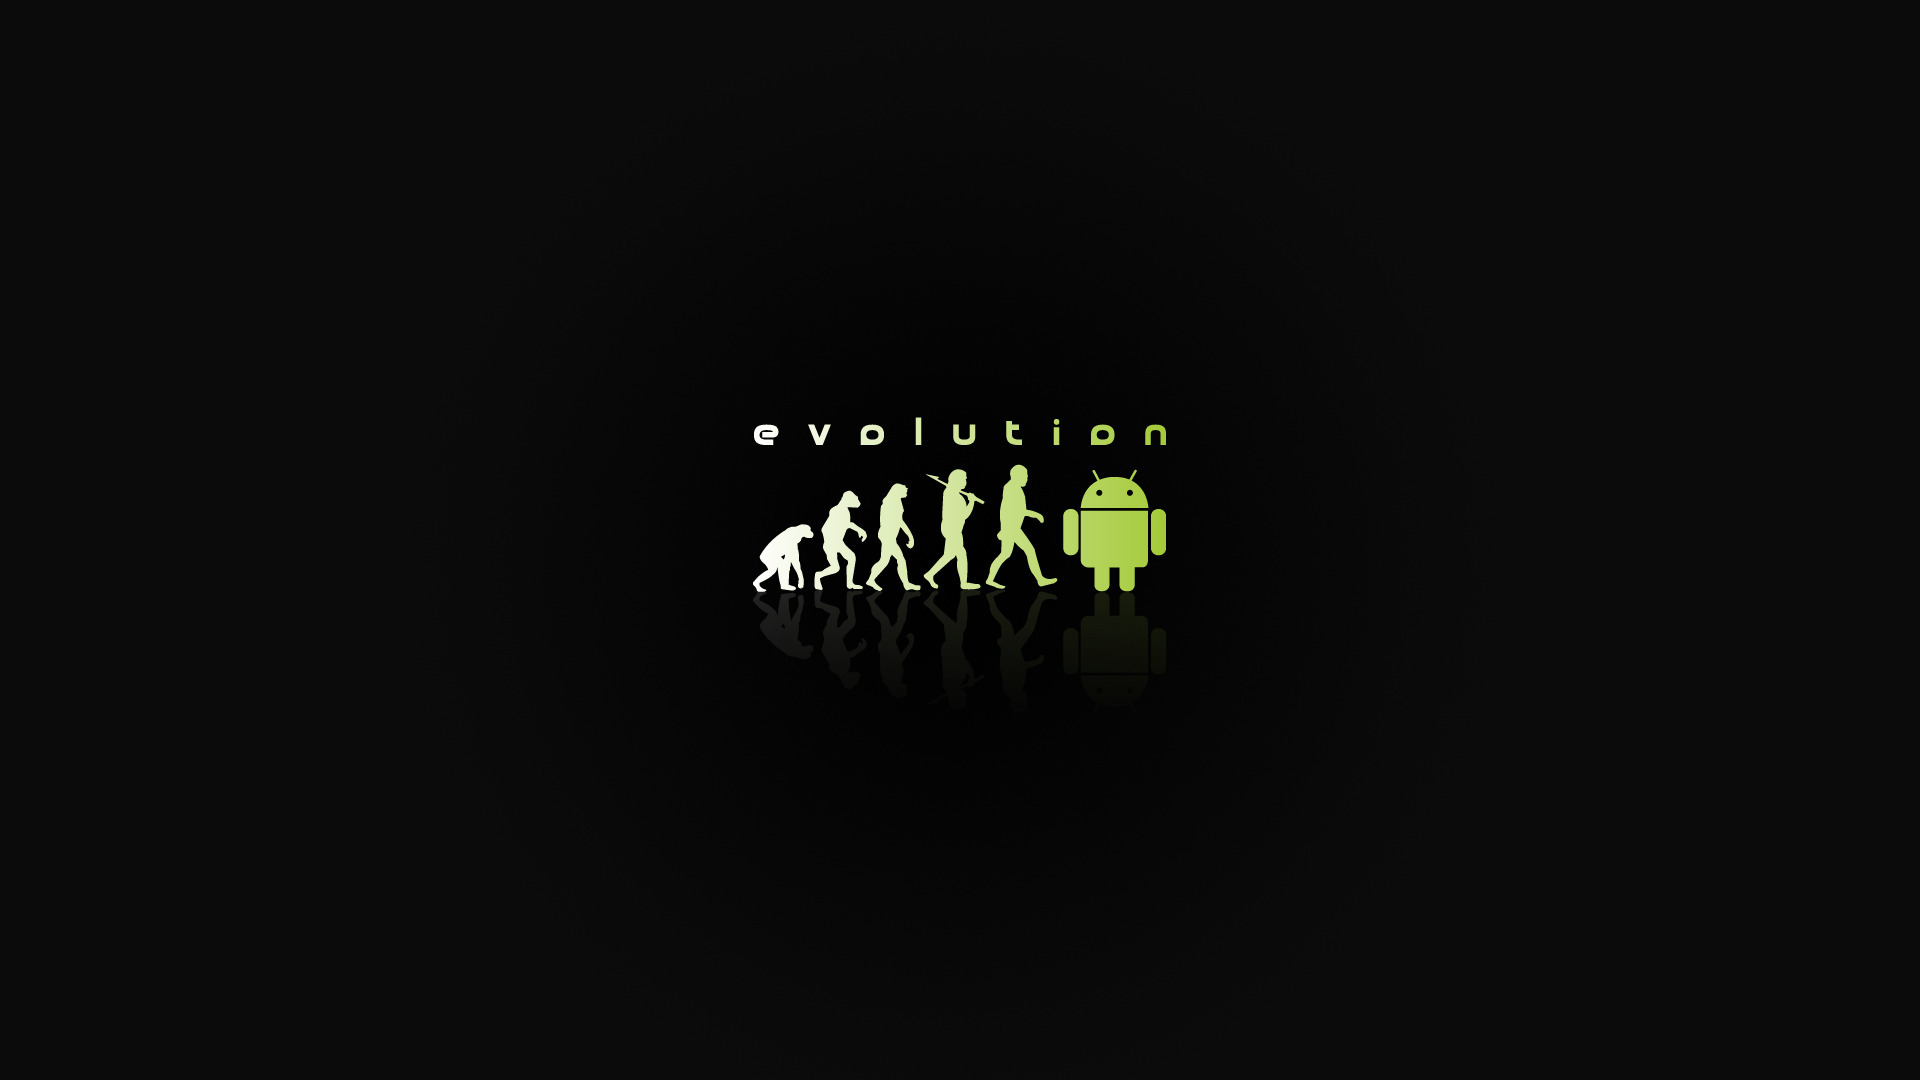 The Android Evolution 1080p HD Wallpaper 1080p HD Wallpapers